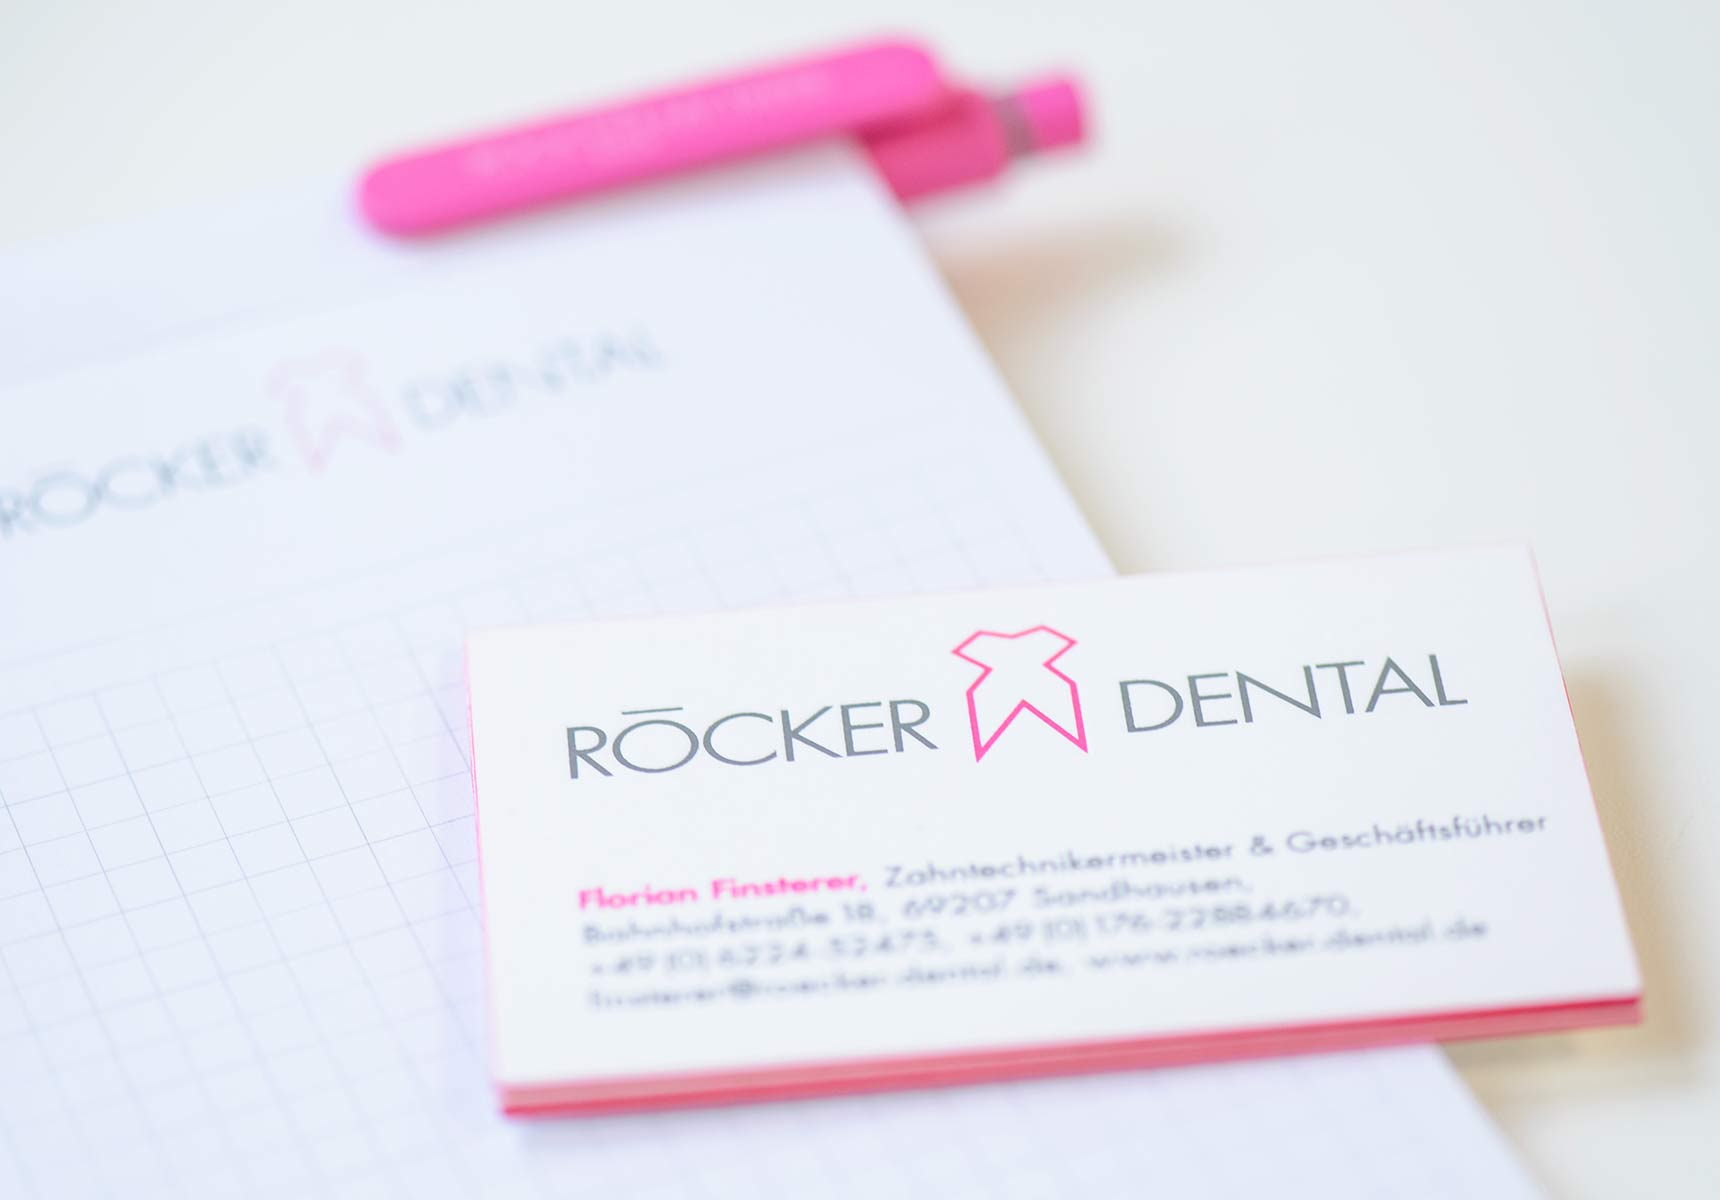 lr praxismarketing roecker dental corporate design visitenkarten 2 - Langenstein & Reichenthaler - Agentur für Praxismarketing